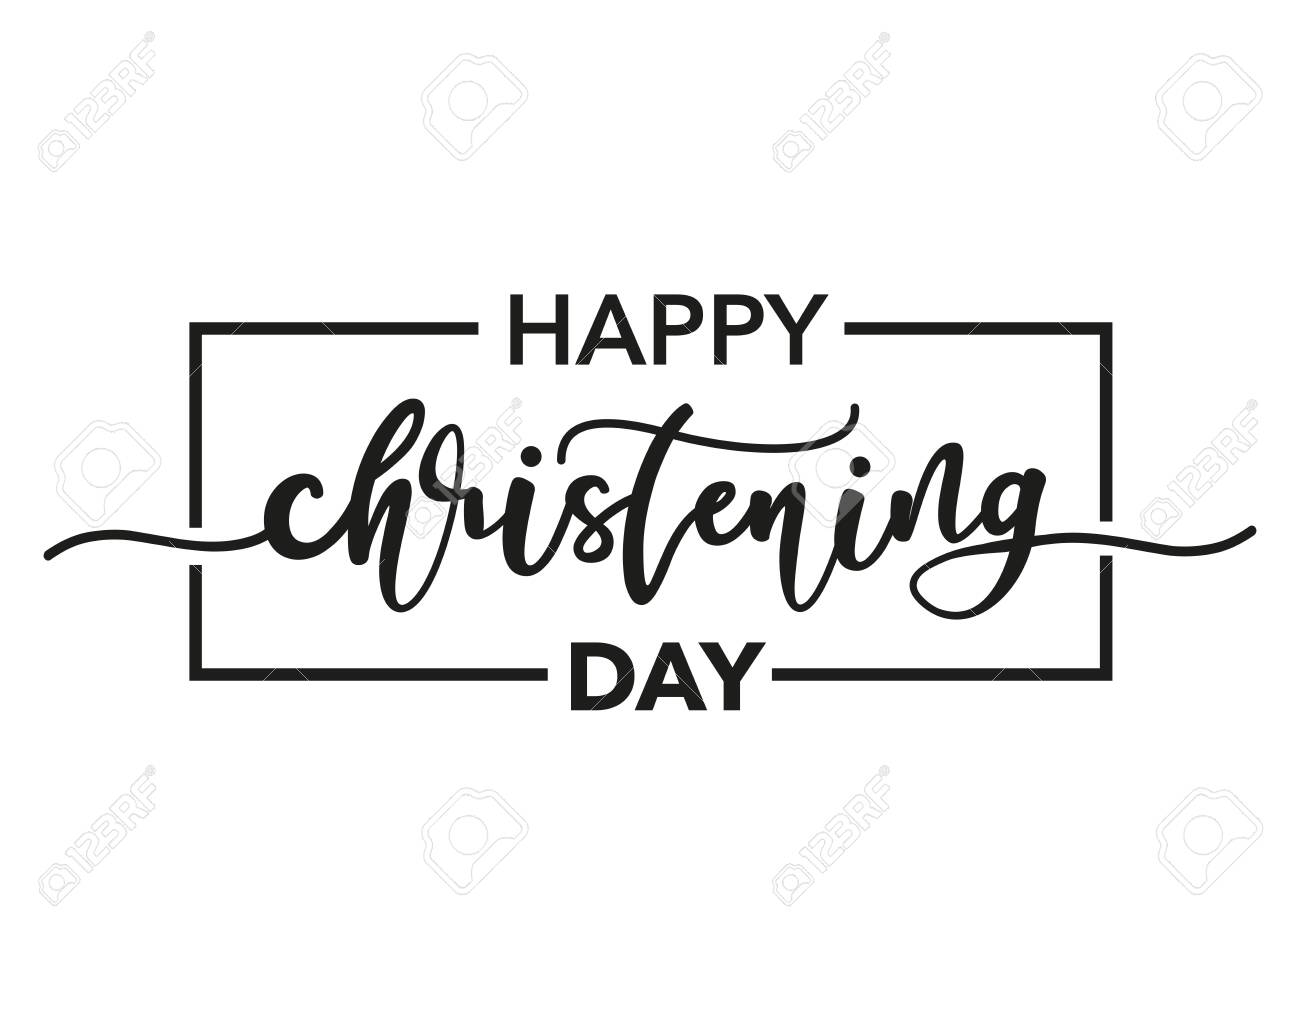 Happy Christening Day. Black text isolated on white background. Vector stock illustration. Welcome to the Christian world. Baptism lettering - 141989546